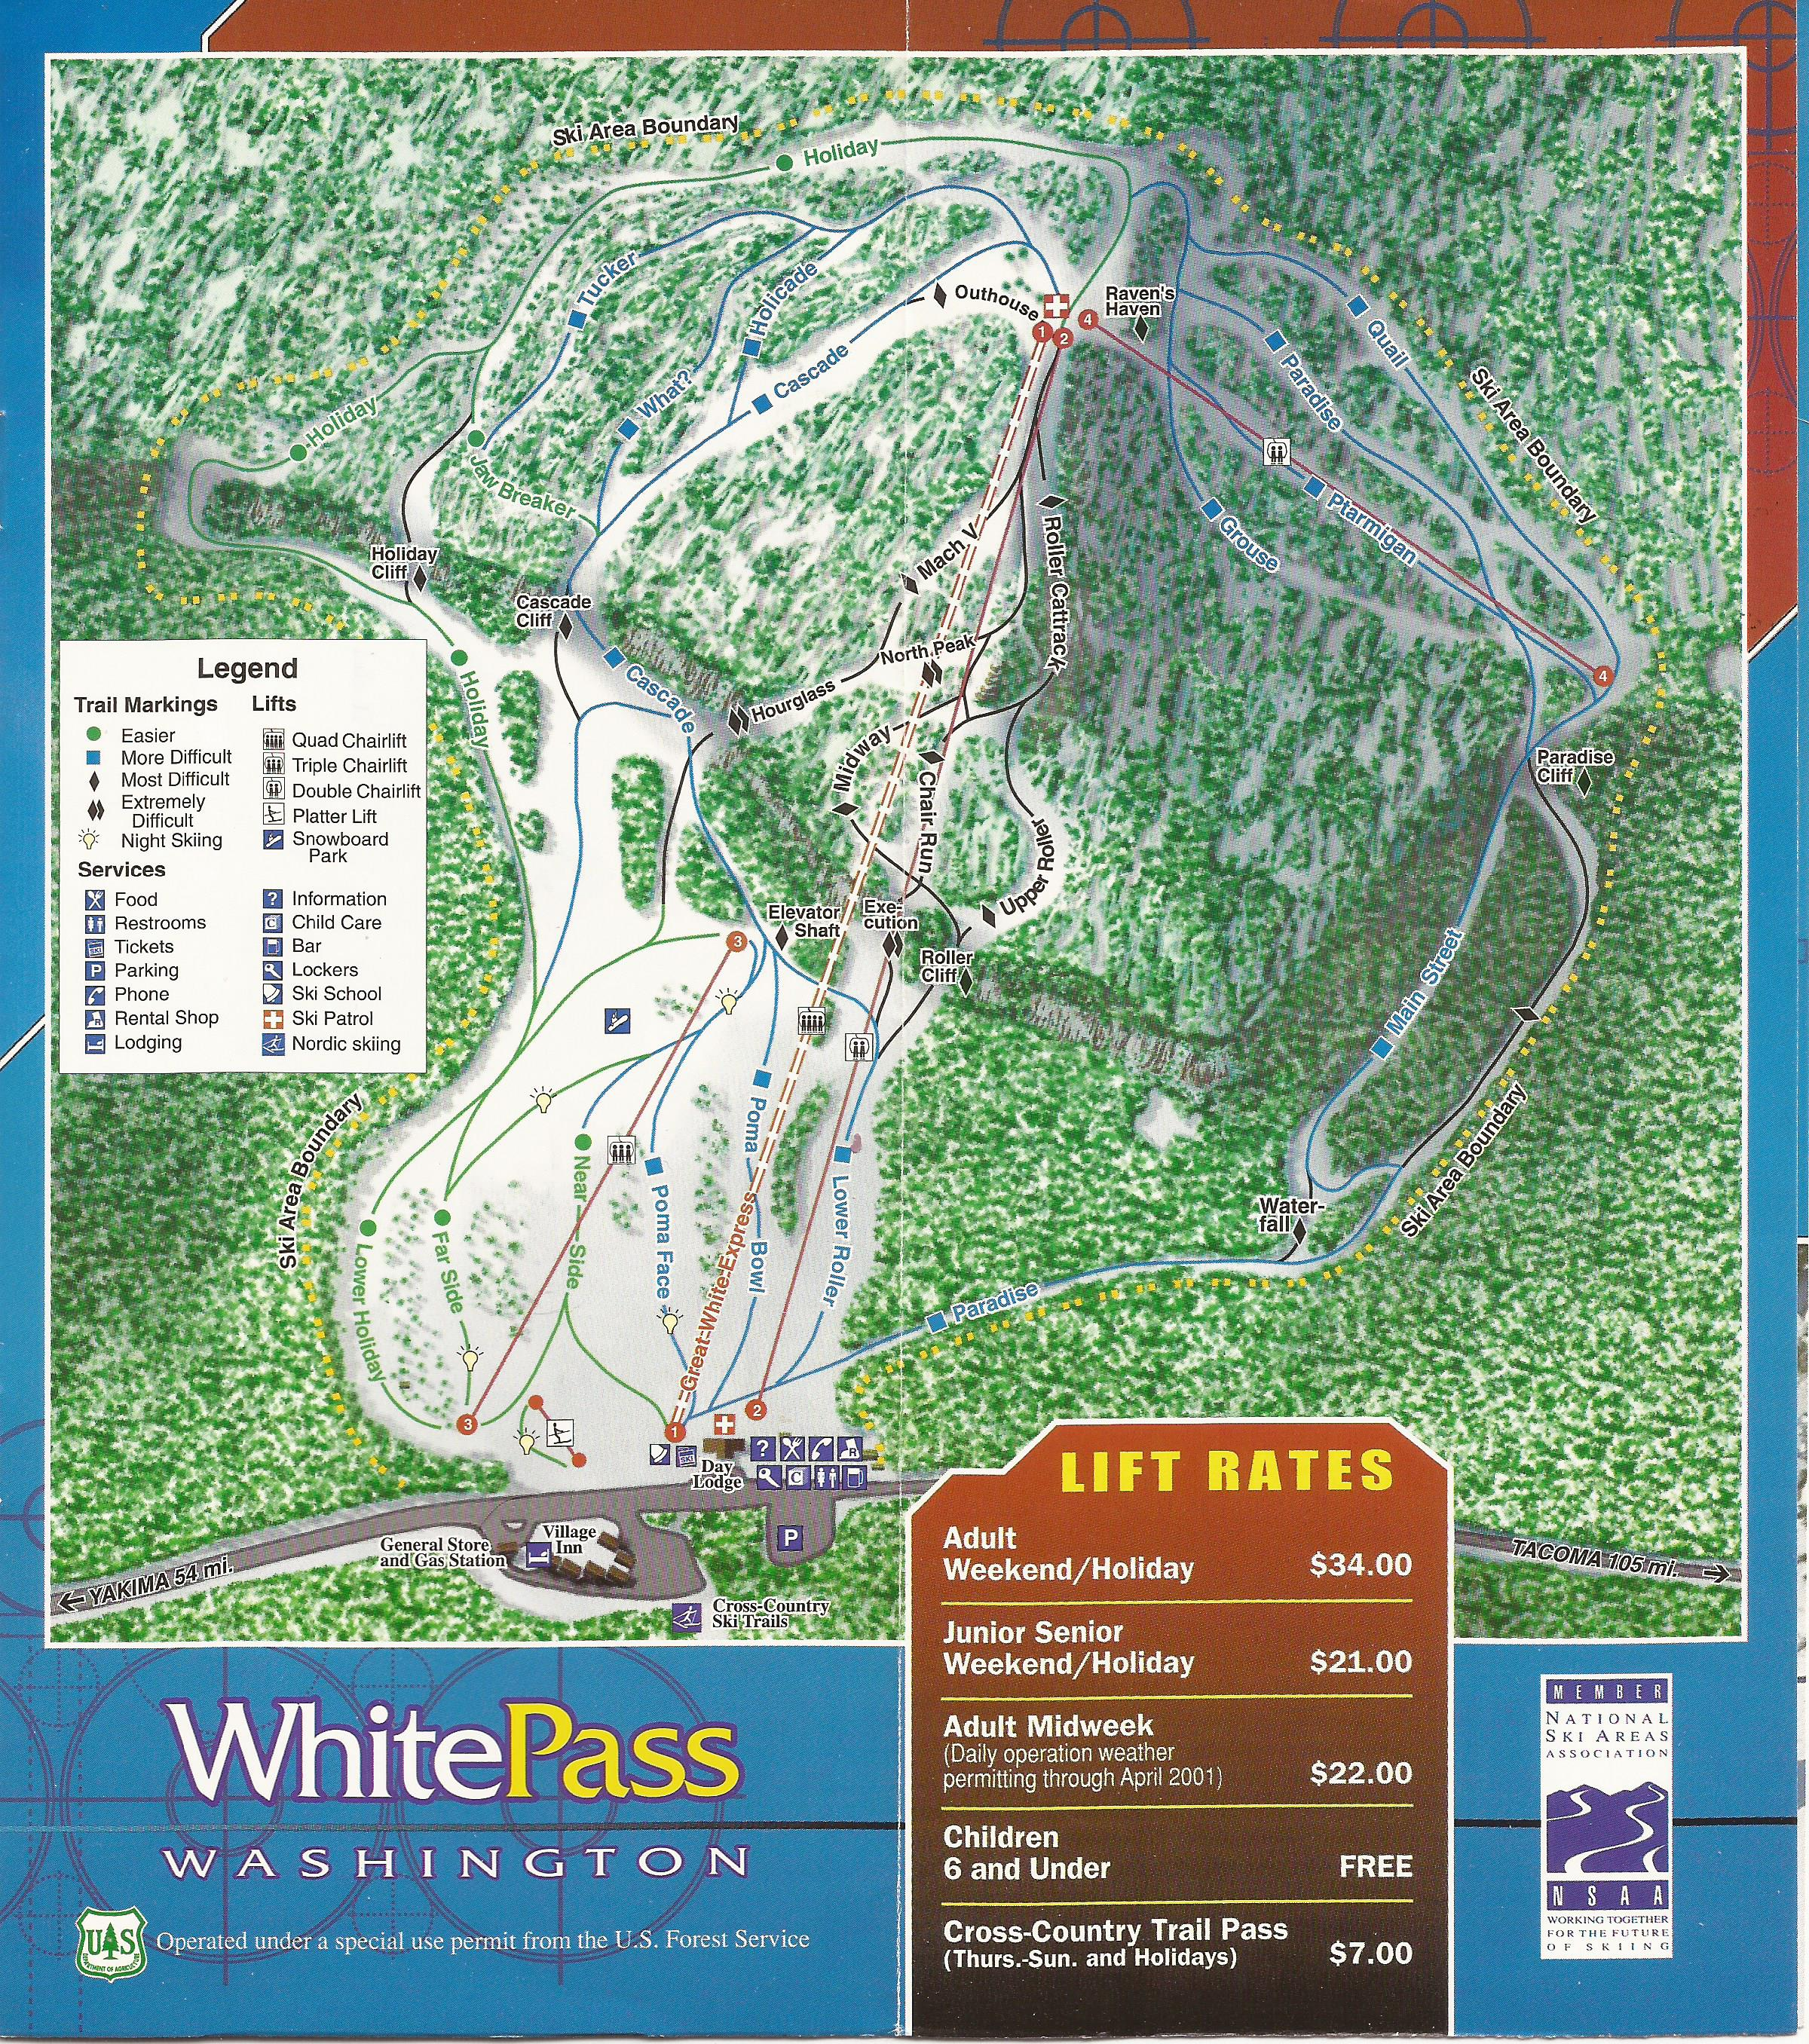 White Pass Map White Pass Ski Area   SkiMap.org